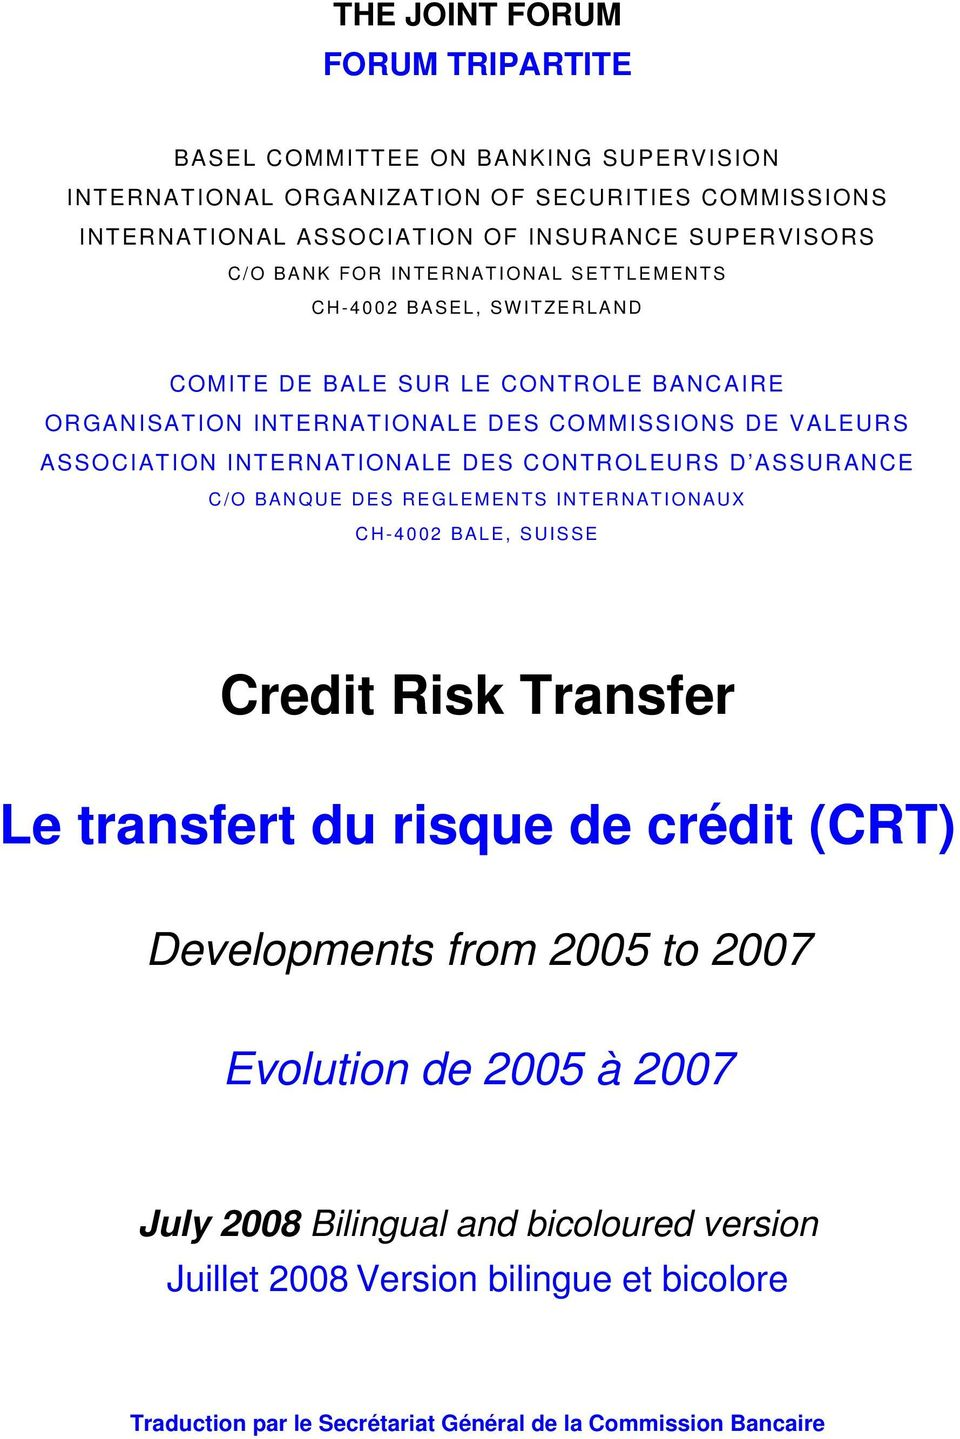 INTERNATIONALE DES CONTROLEURS D ASSURANCE C/O BANQUE DES REGLEMENTS INTERNATIONAUX CH-4002 BALE, SUISSE Credit Risk Transfer Le transfert du risque de crédit (CRT) Developments